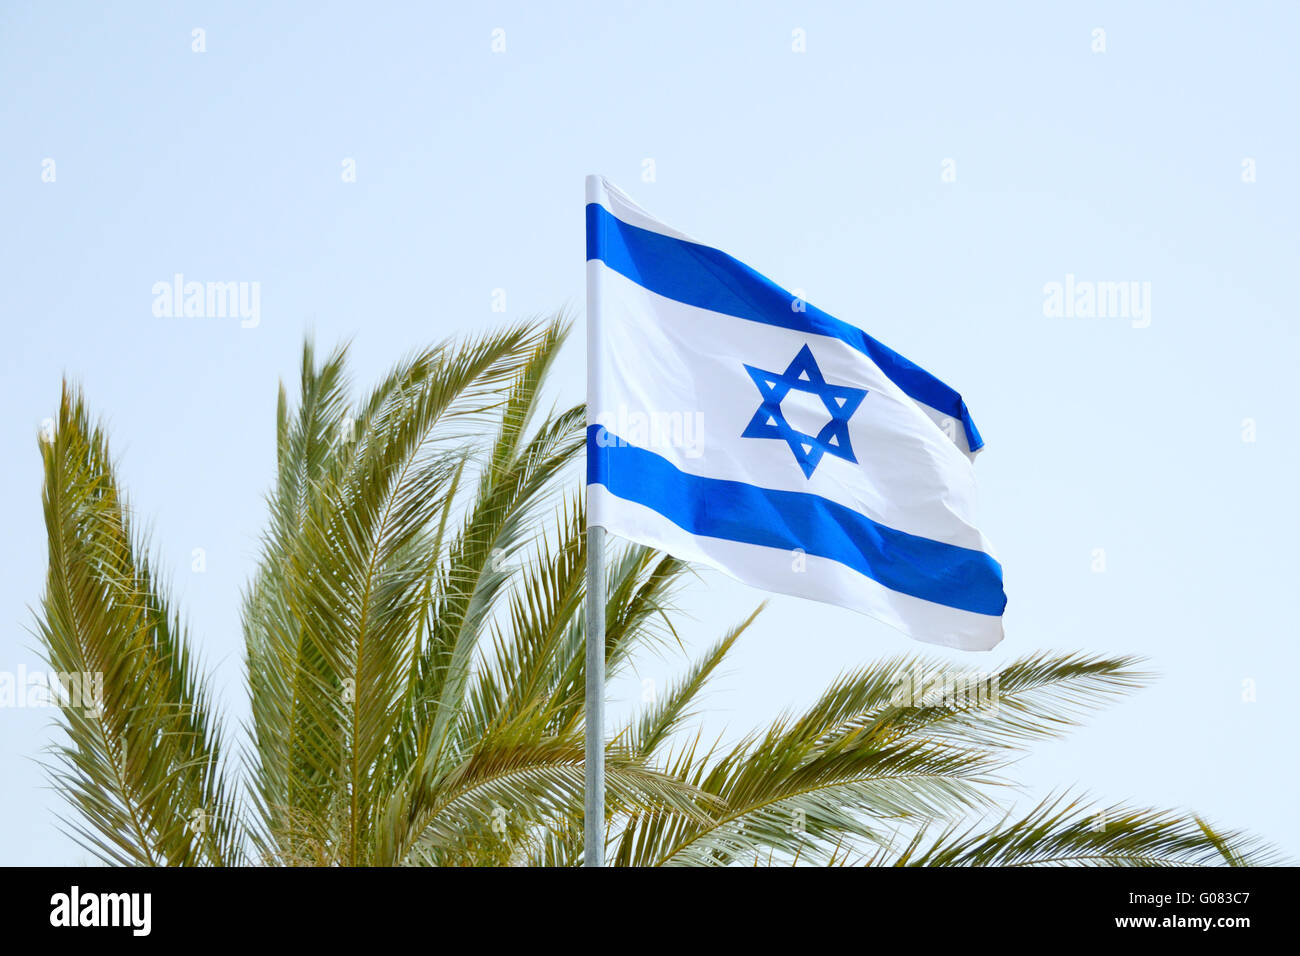 Israel's flag float on the wind against a sky. - Stock Image